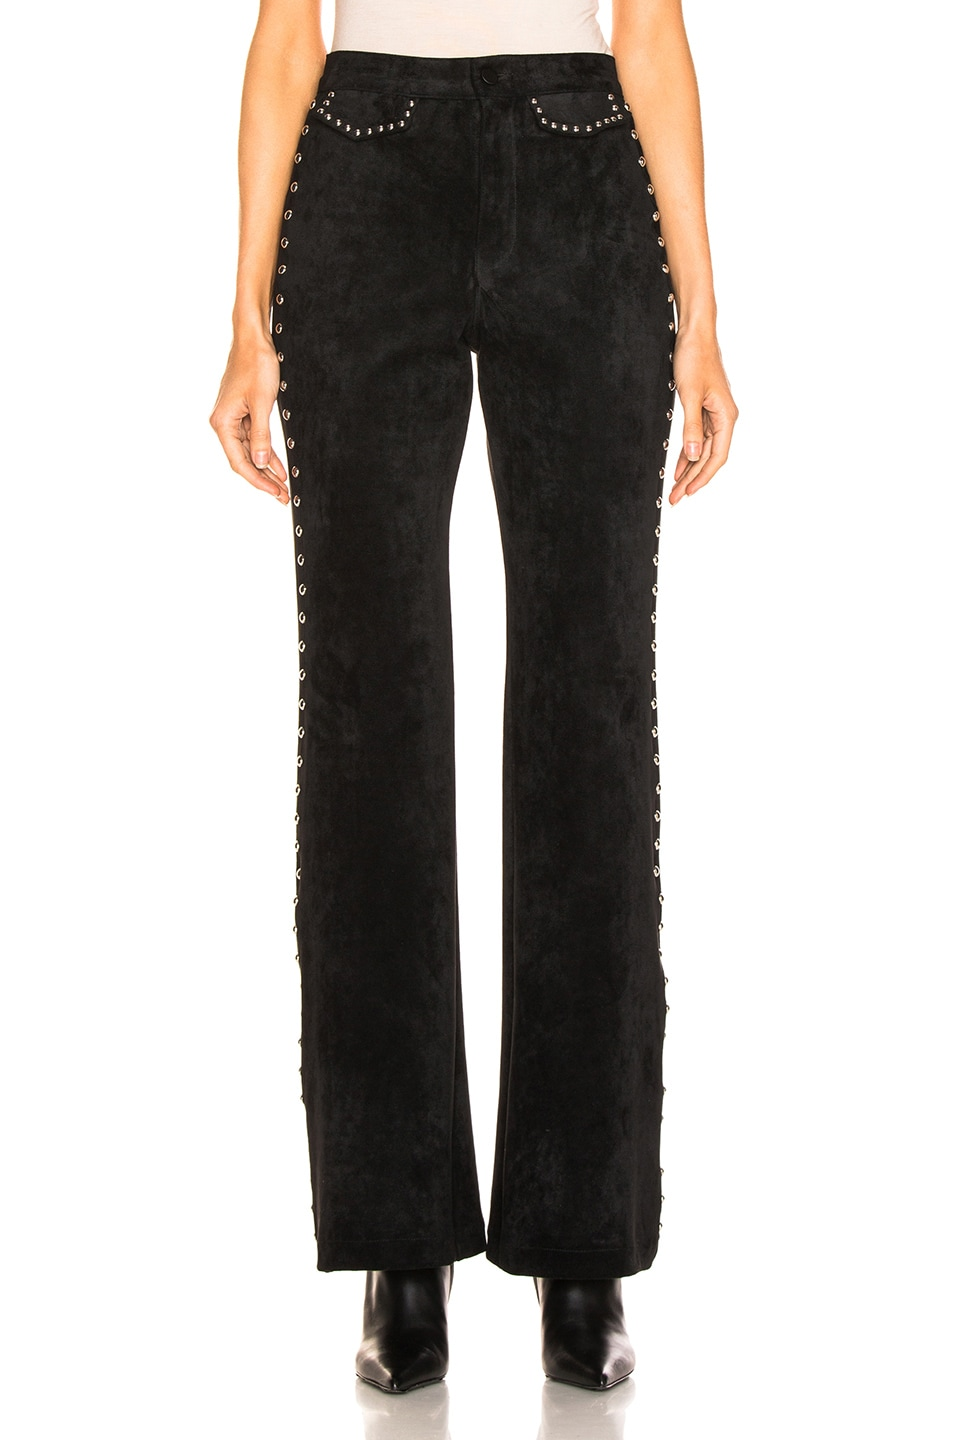 Image 1 of LAUREL & MULHOLLAND Gypsy Thieves High Waist Pant in Black